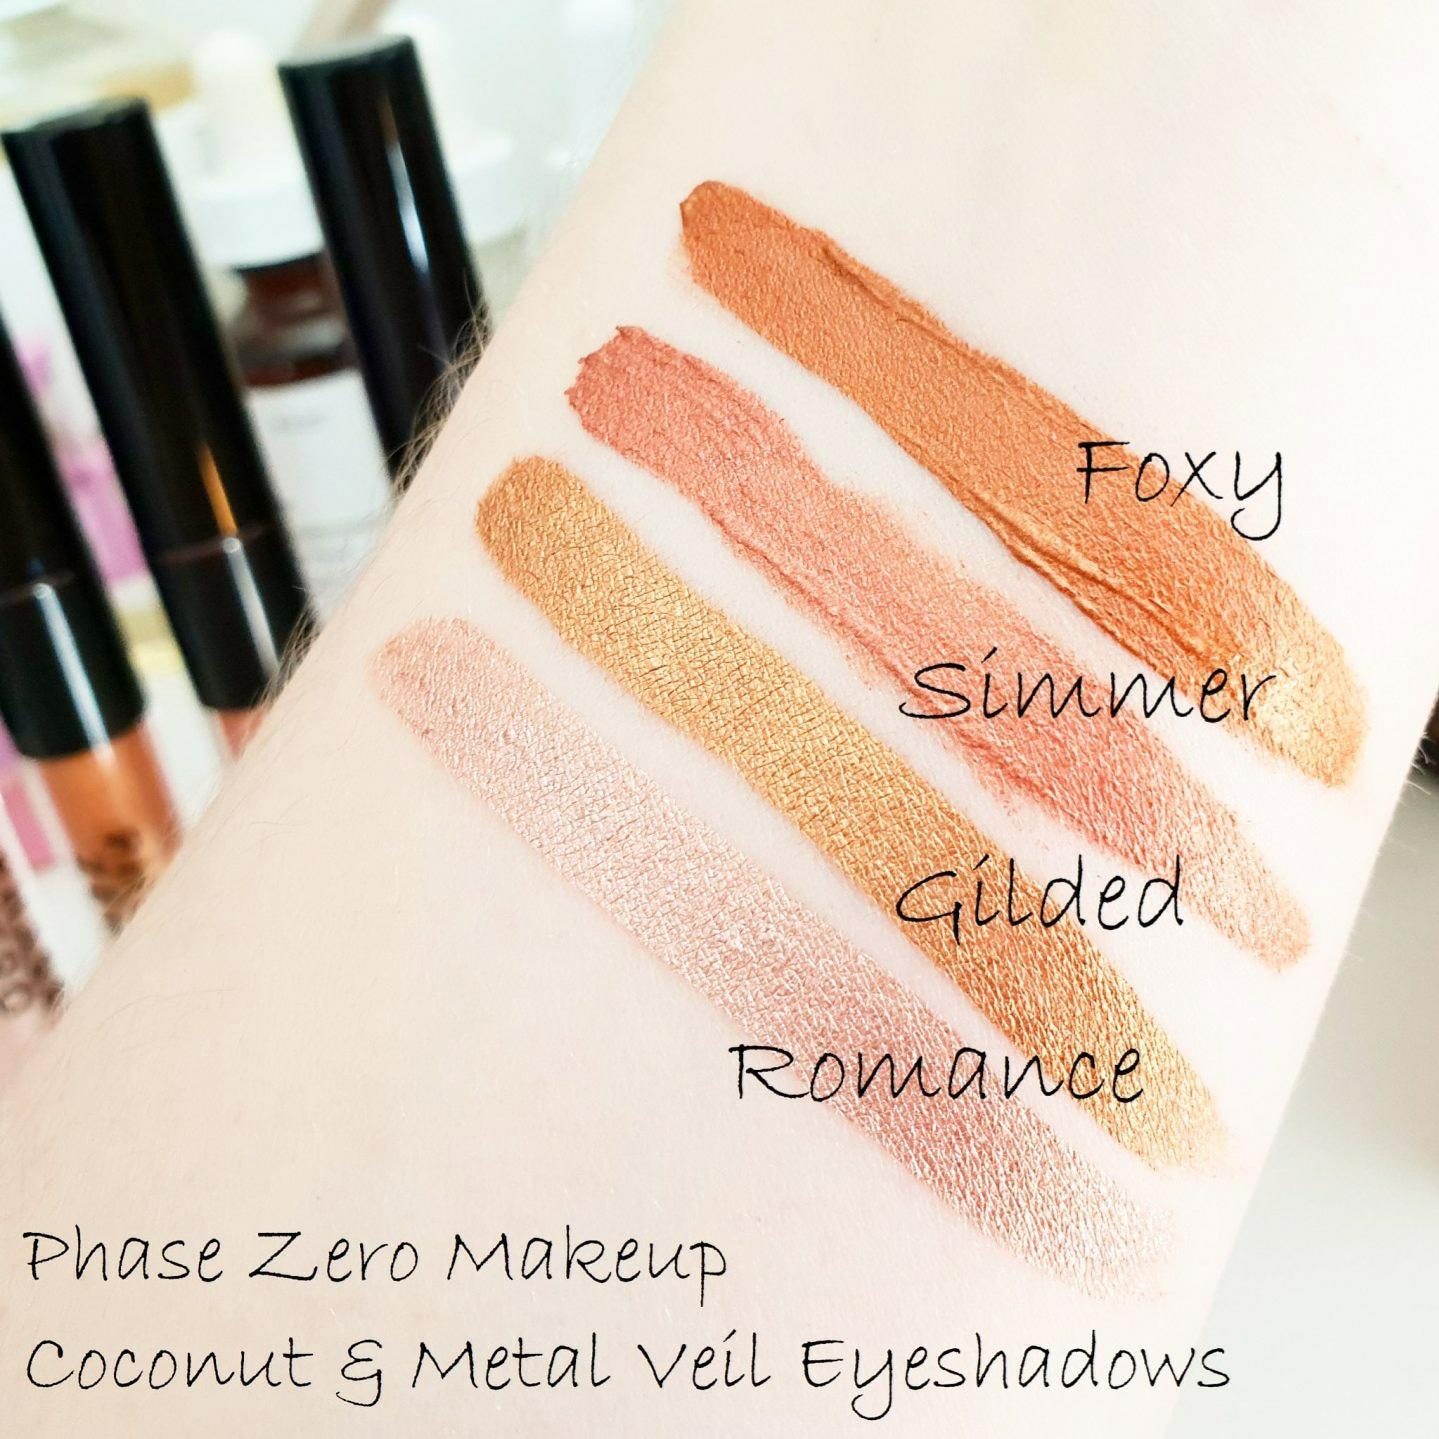 Phase Zero Makeup | Coconut & Metal Veil Liquid Eyeshadows